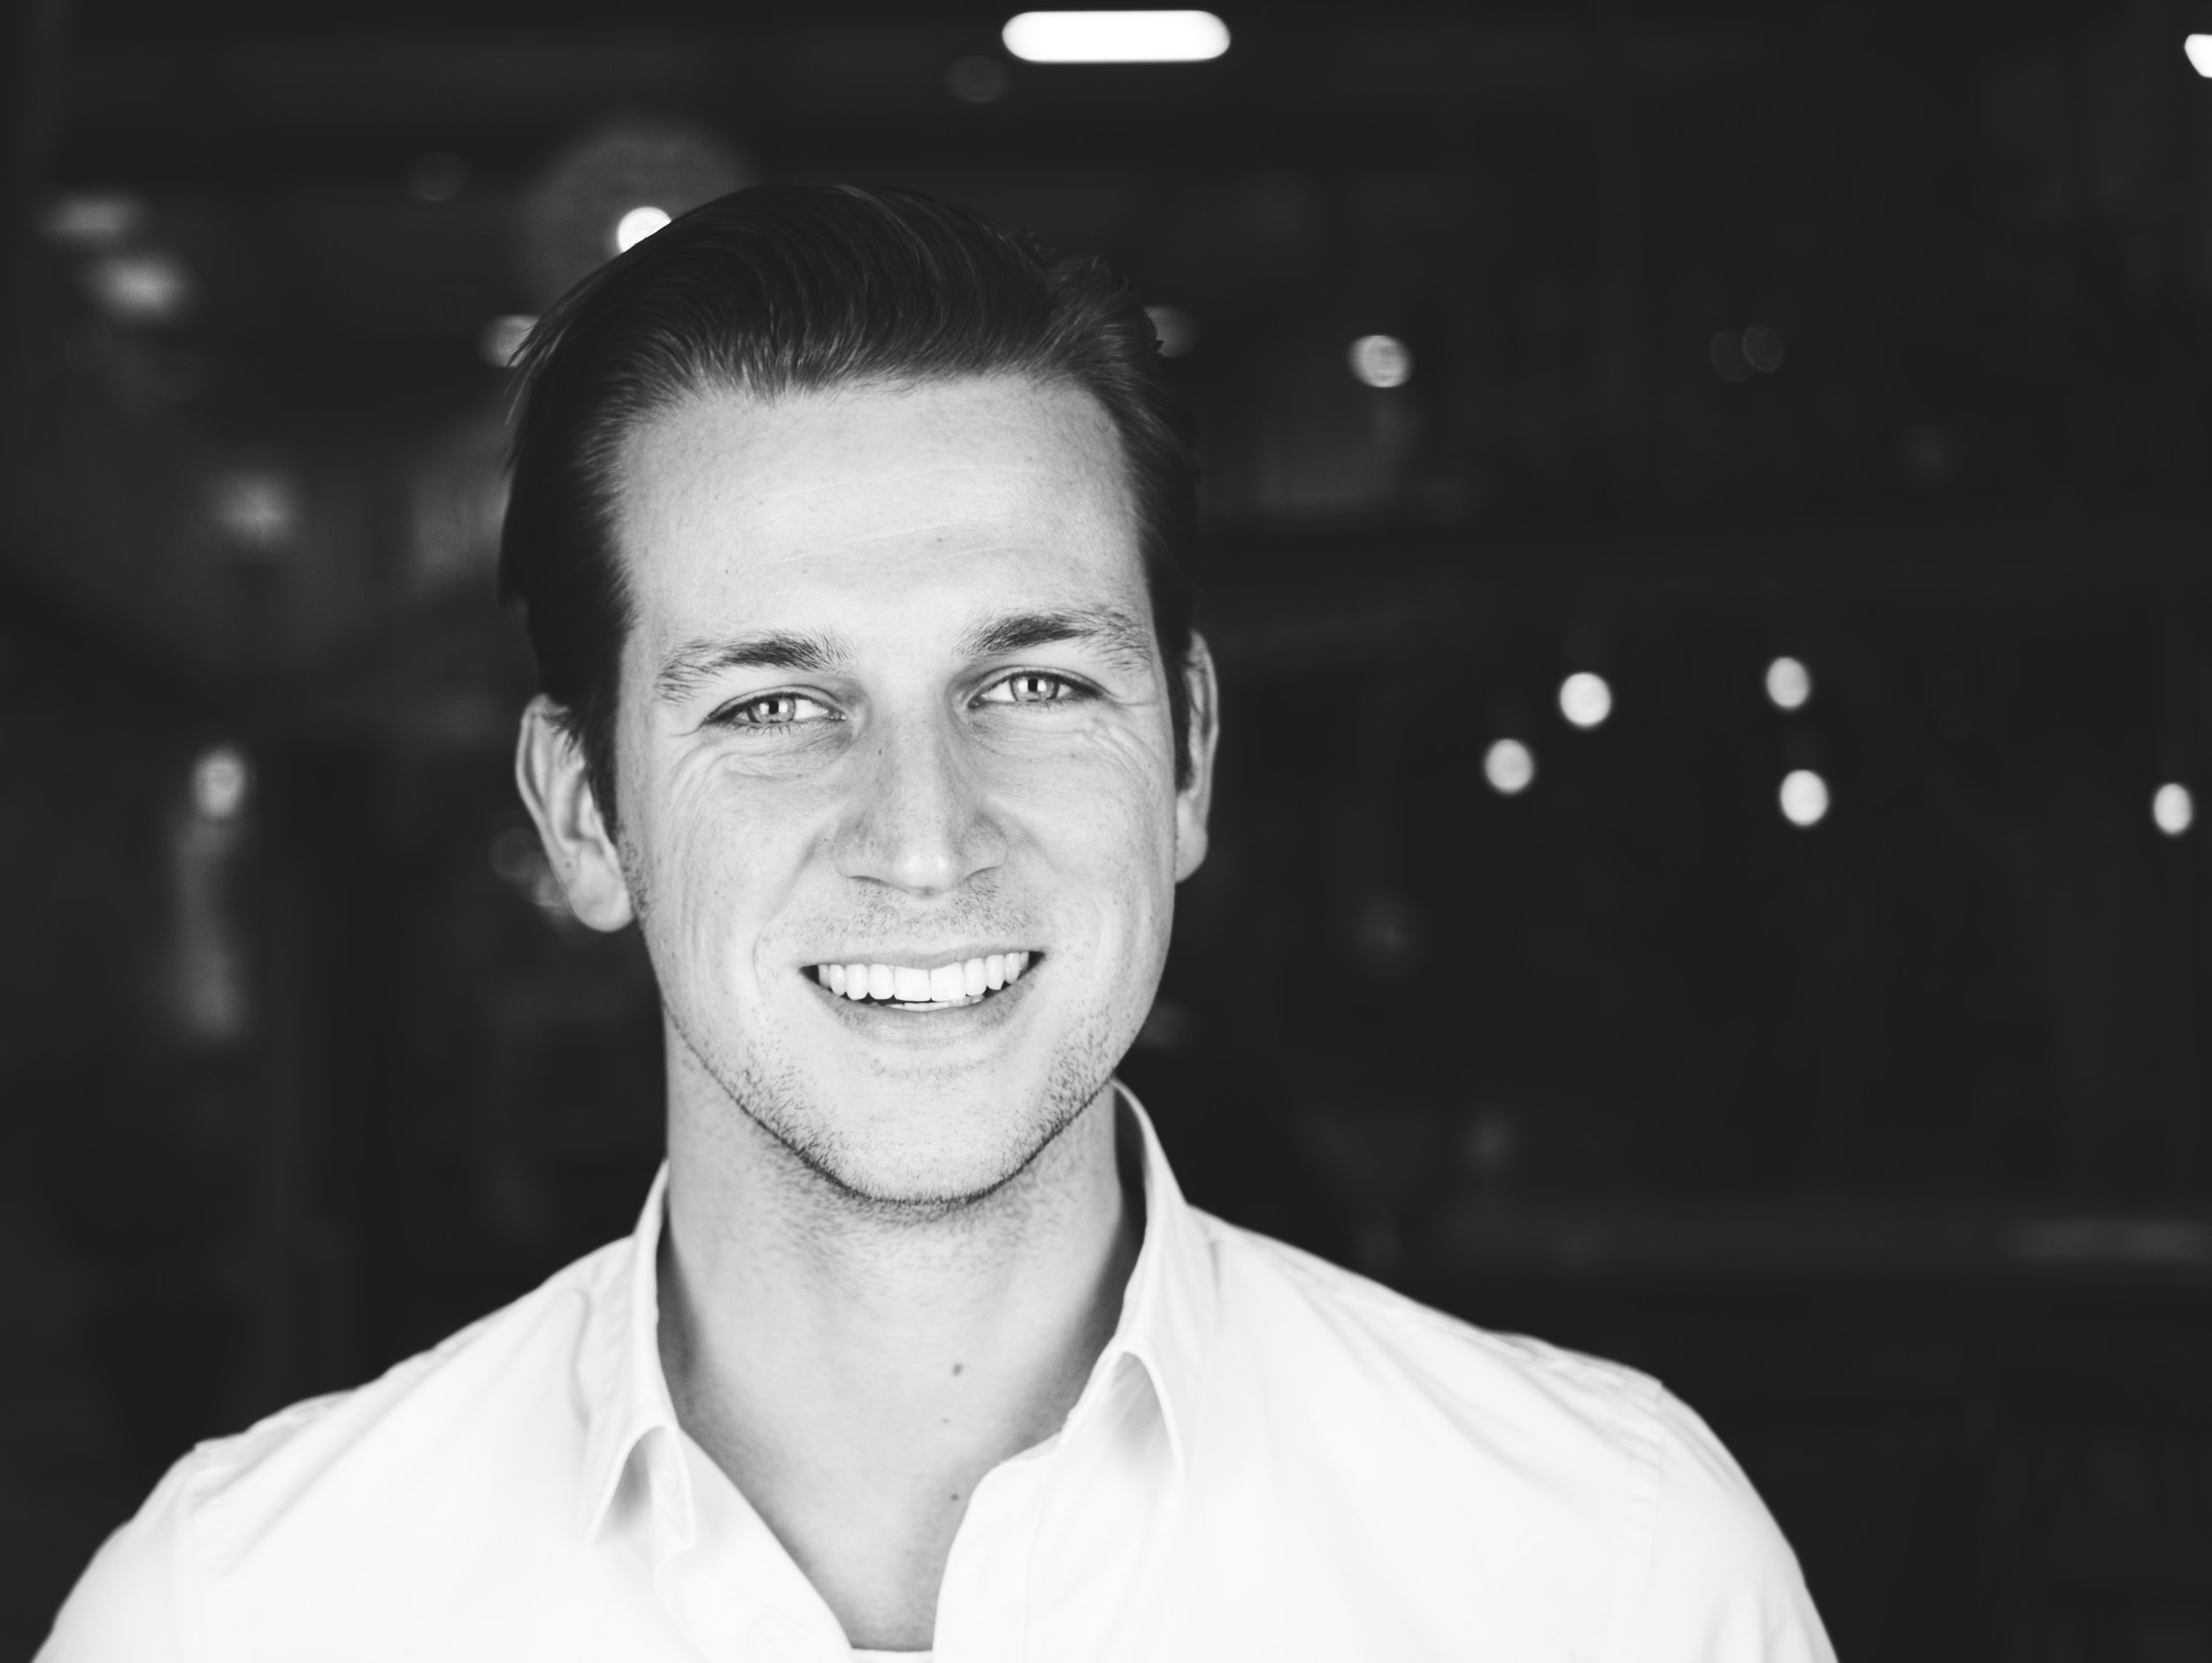 Brian Smits - Technical Account Manager - With over 8 years of experience in sales, finance and recruitment, Brian is merging all this experience in his role of Technical Account Manager at Circularise. His business instinct helped him understand the importance and future of a circular economy.LinkedIn